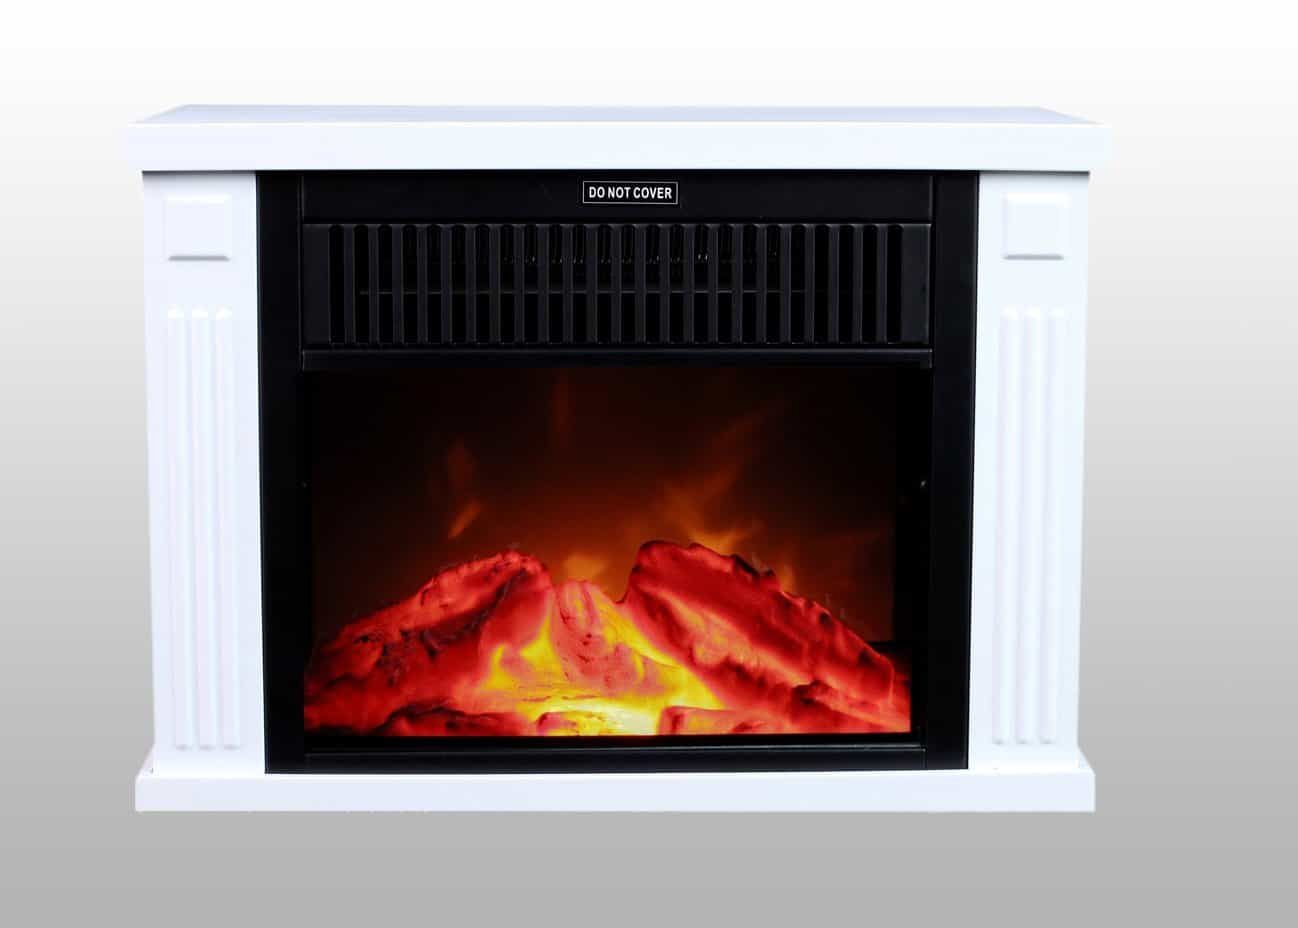 Bargain Mini Electric Portable Fireplace By 3GPlus